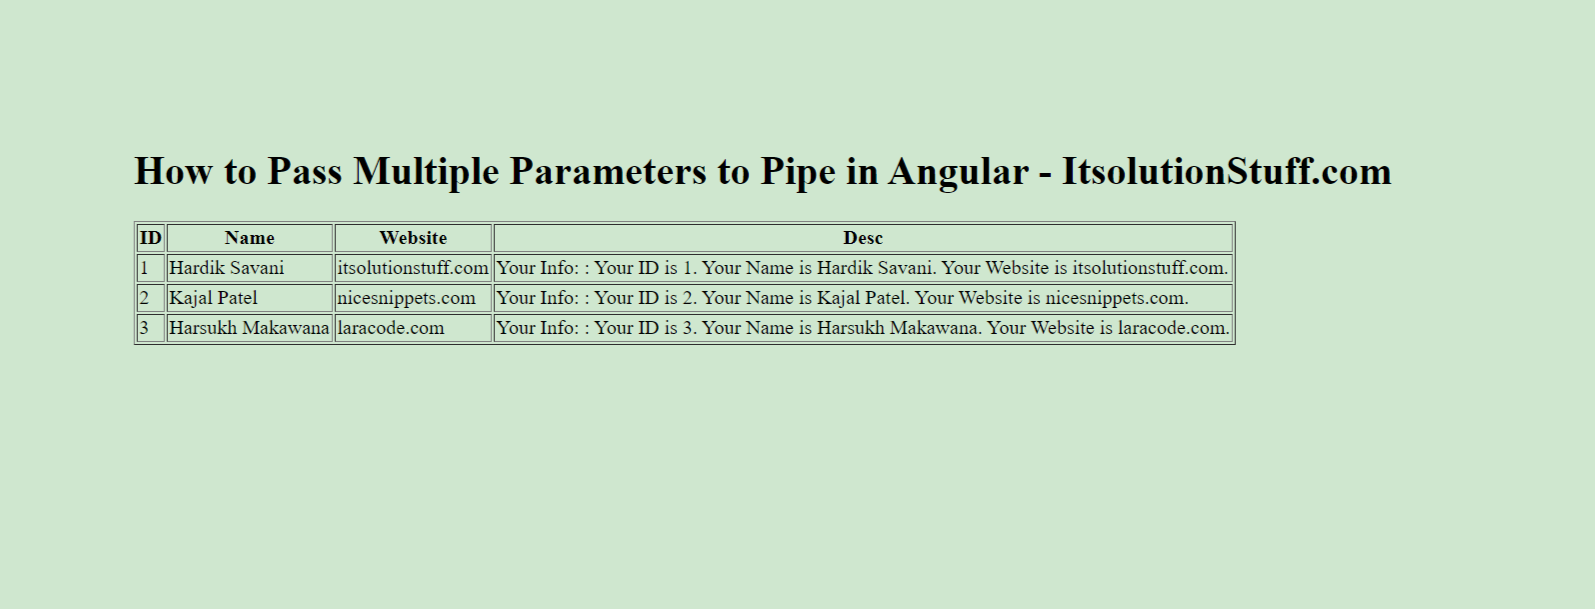 How to Pass Multiple Parameters to Pipe in Angular?